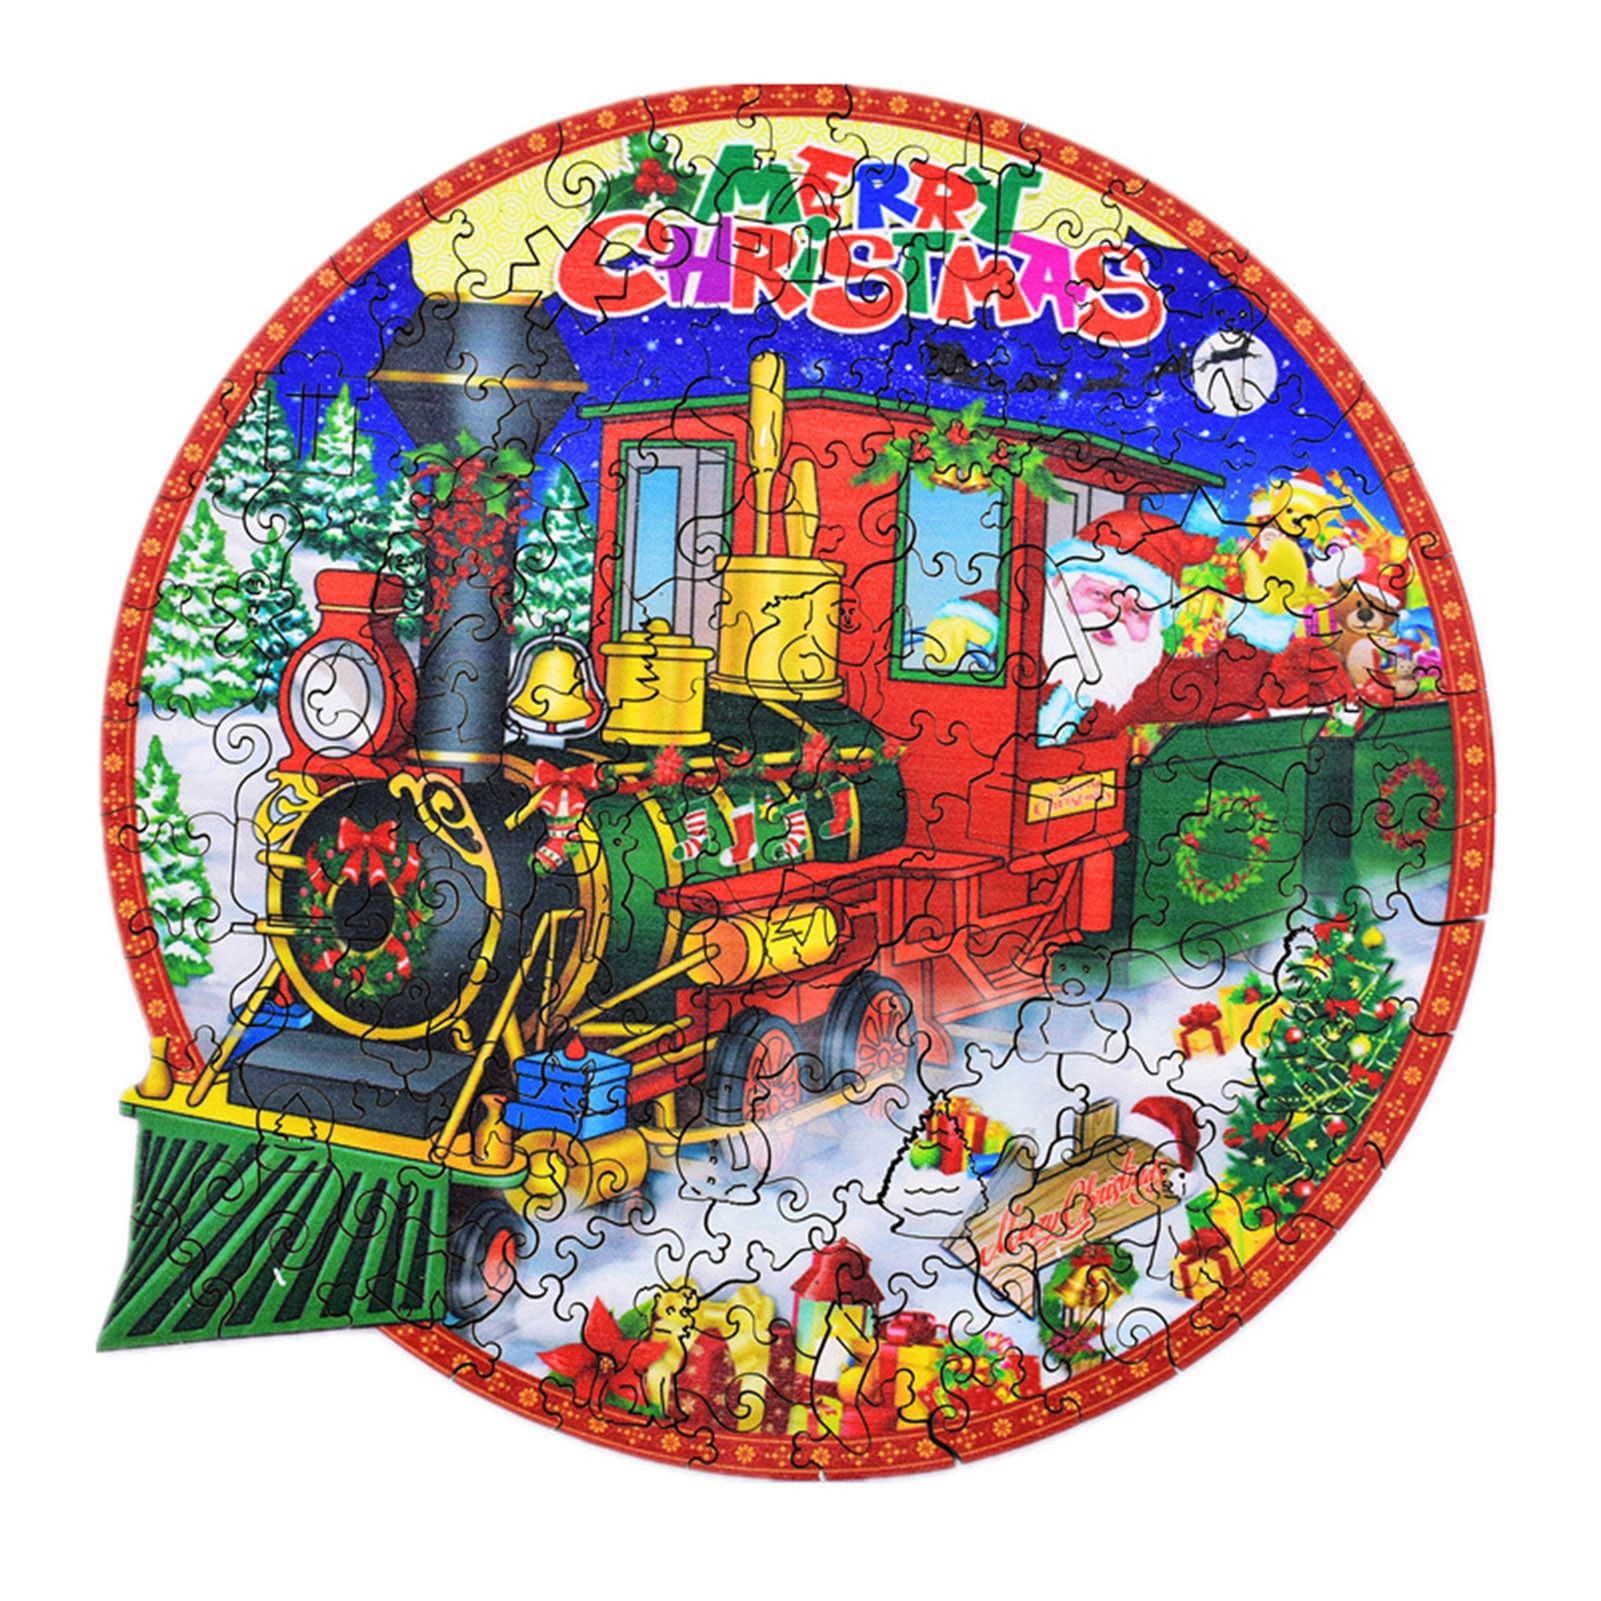 mind games Christmas Wooden Puzzle Santa Claus Merry Christmas Jigsaw Puzzles Mind Exercising Family Child Table Games Educational Toys